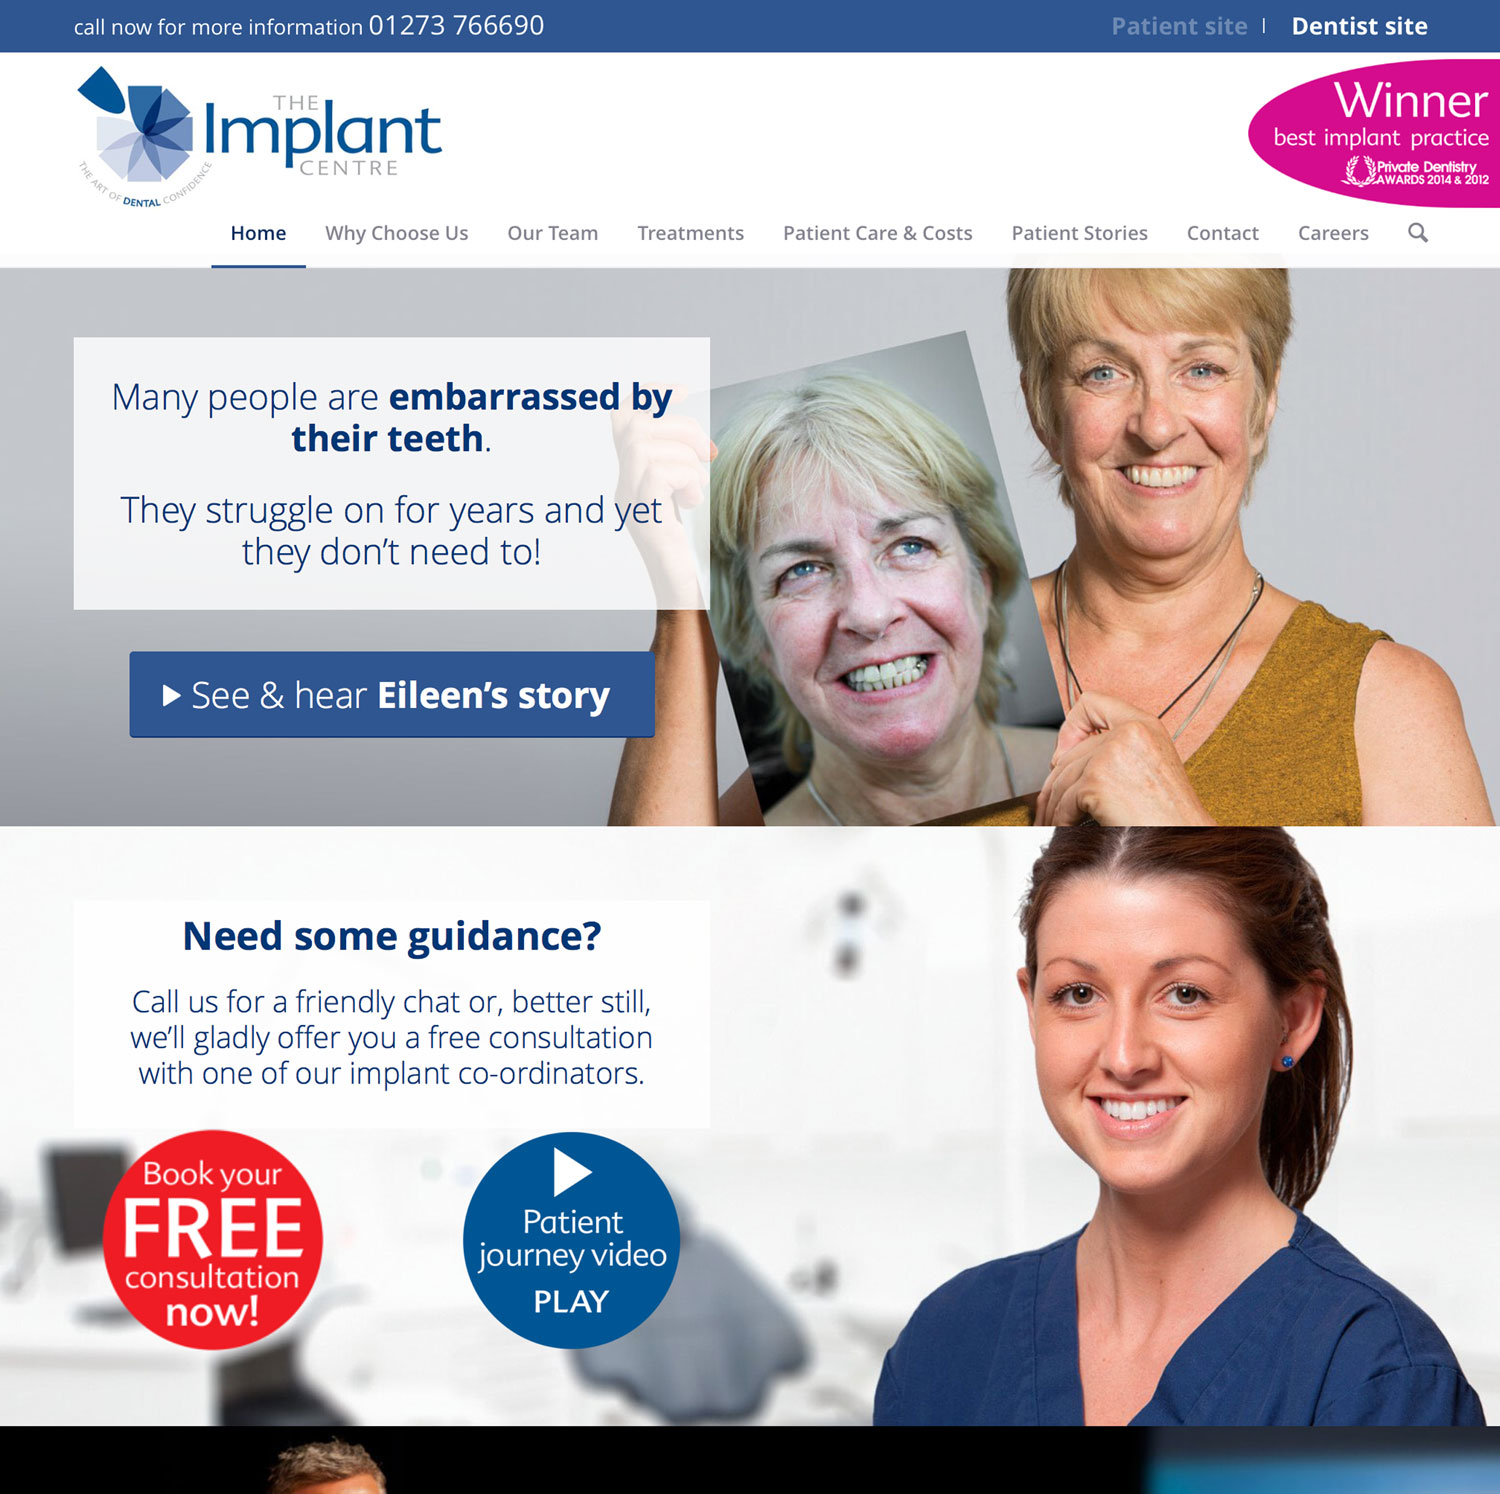 The Implant Centre